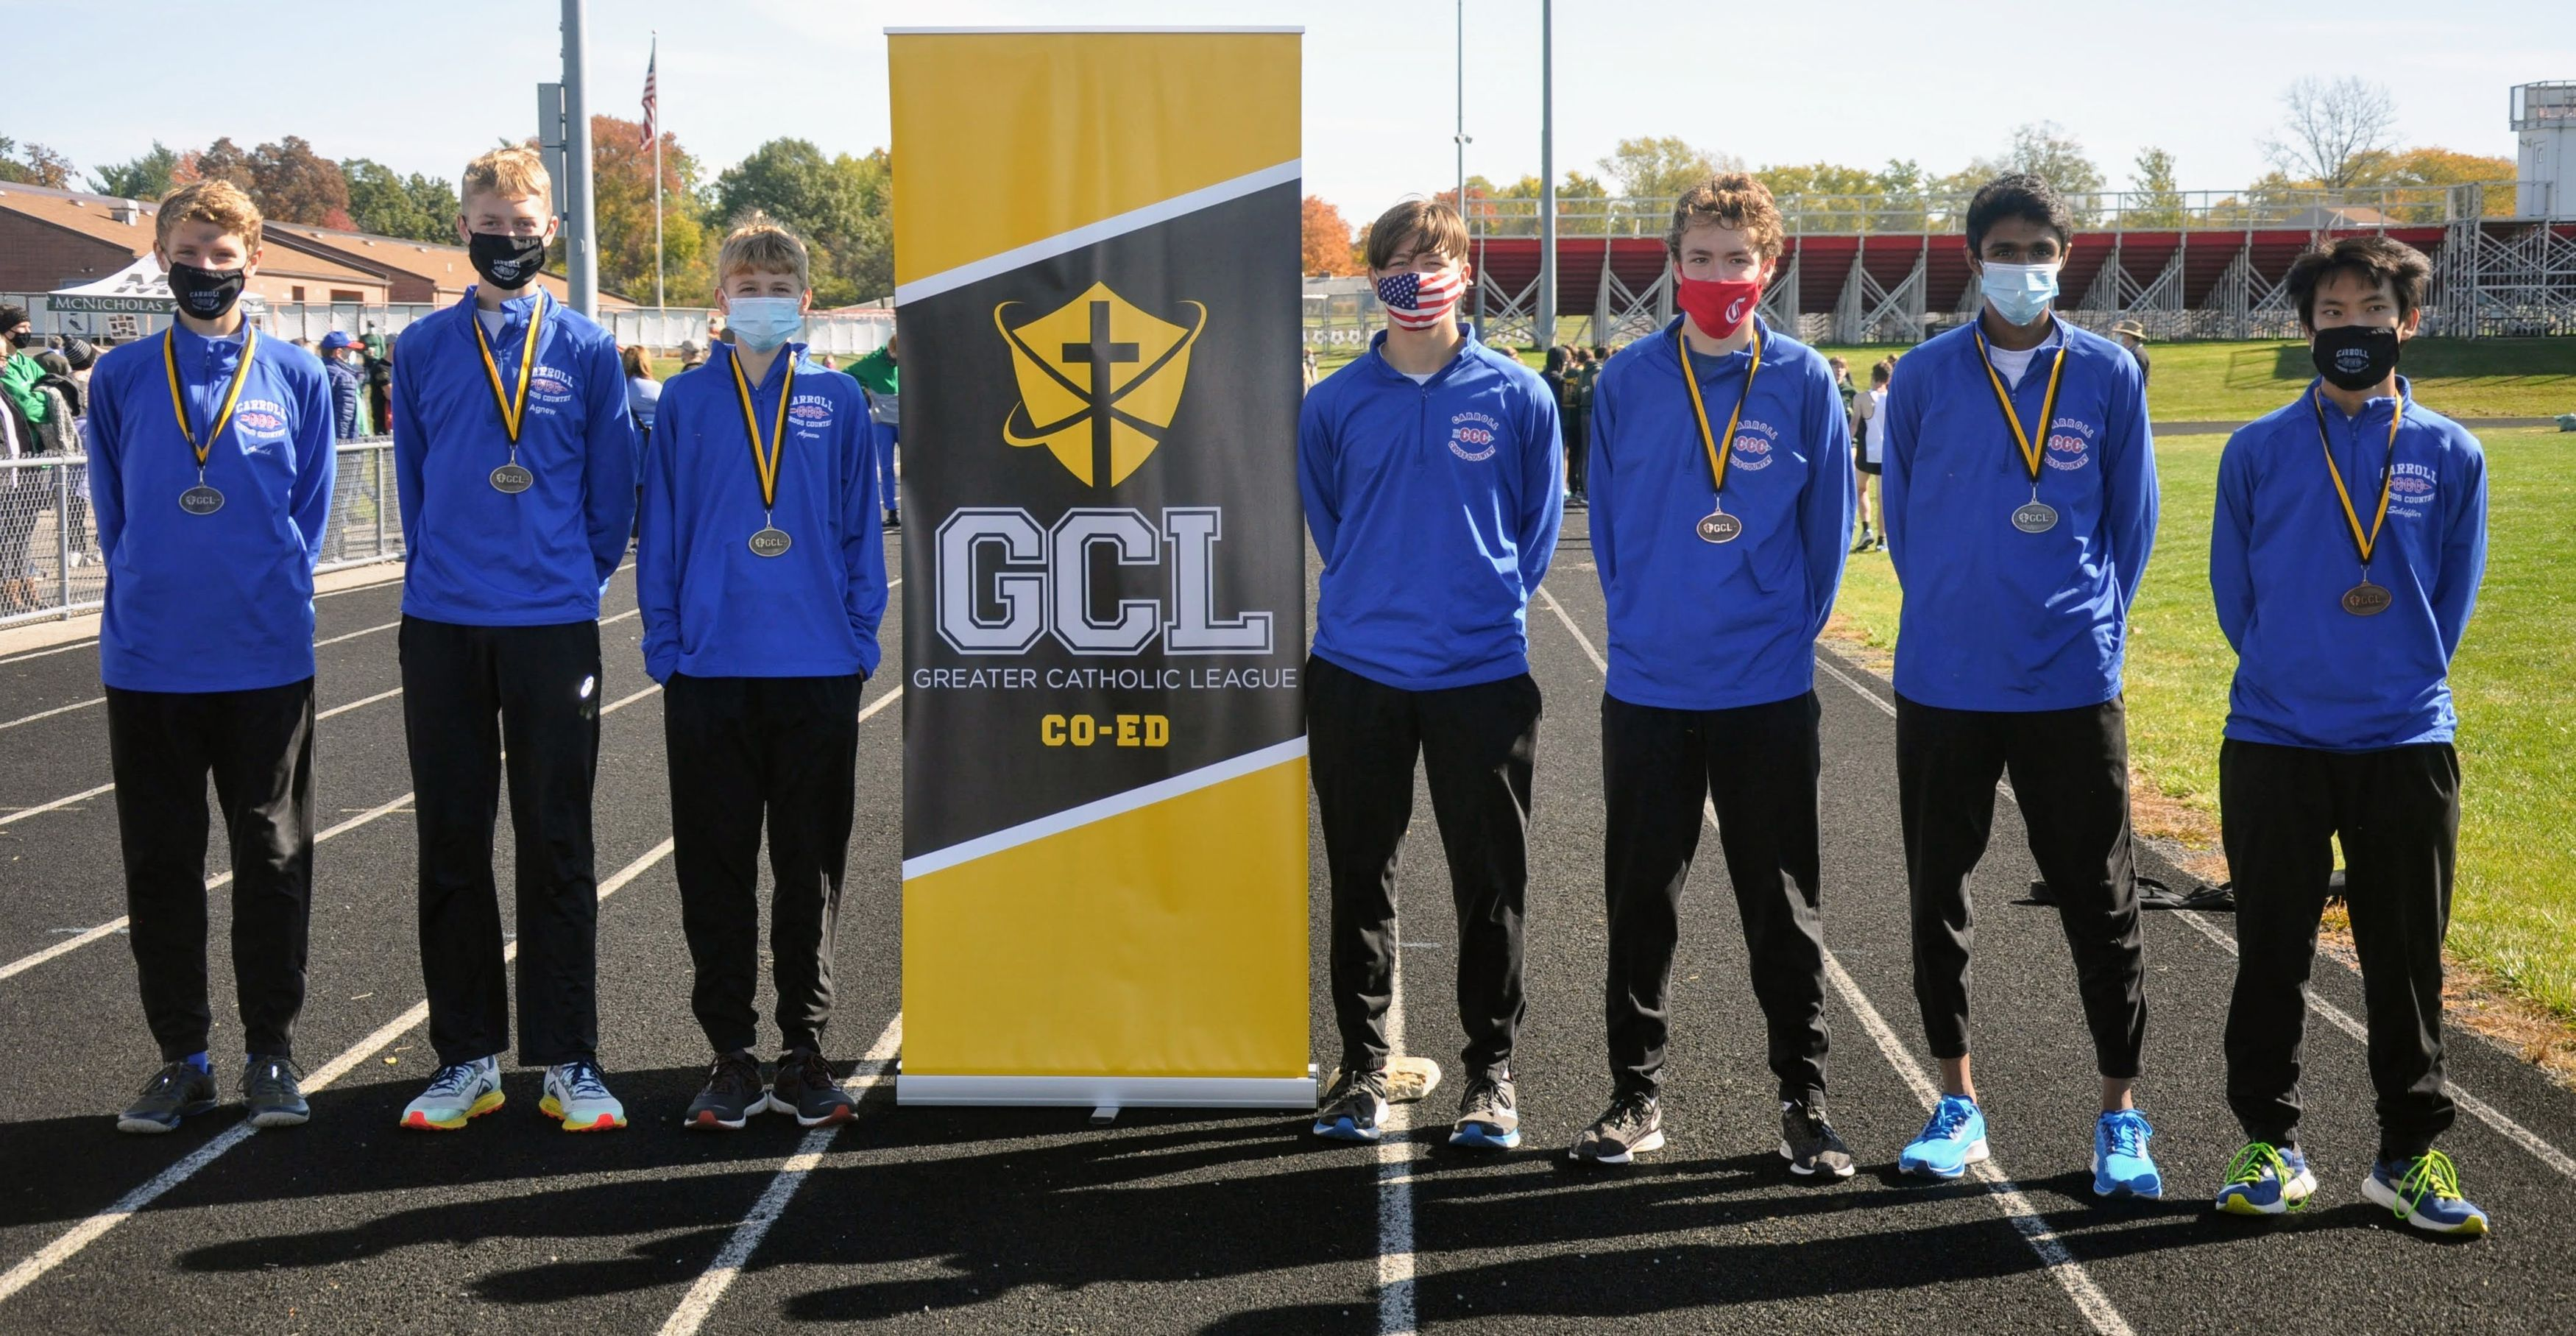 Carroll High School Boys' Cross Country 2020 GCL Champions